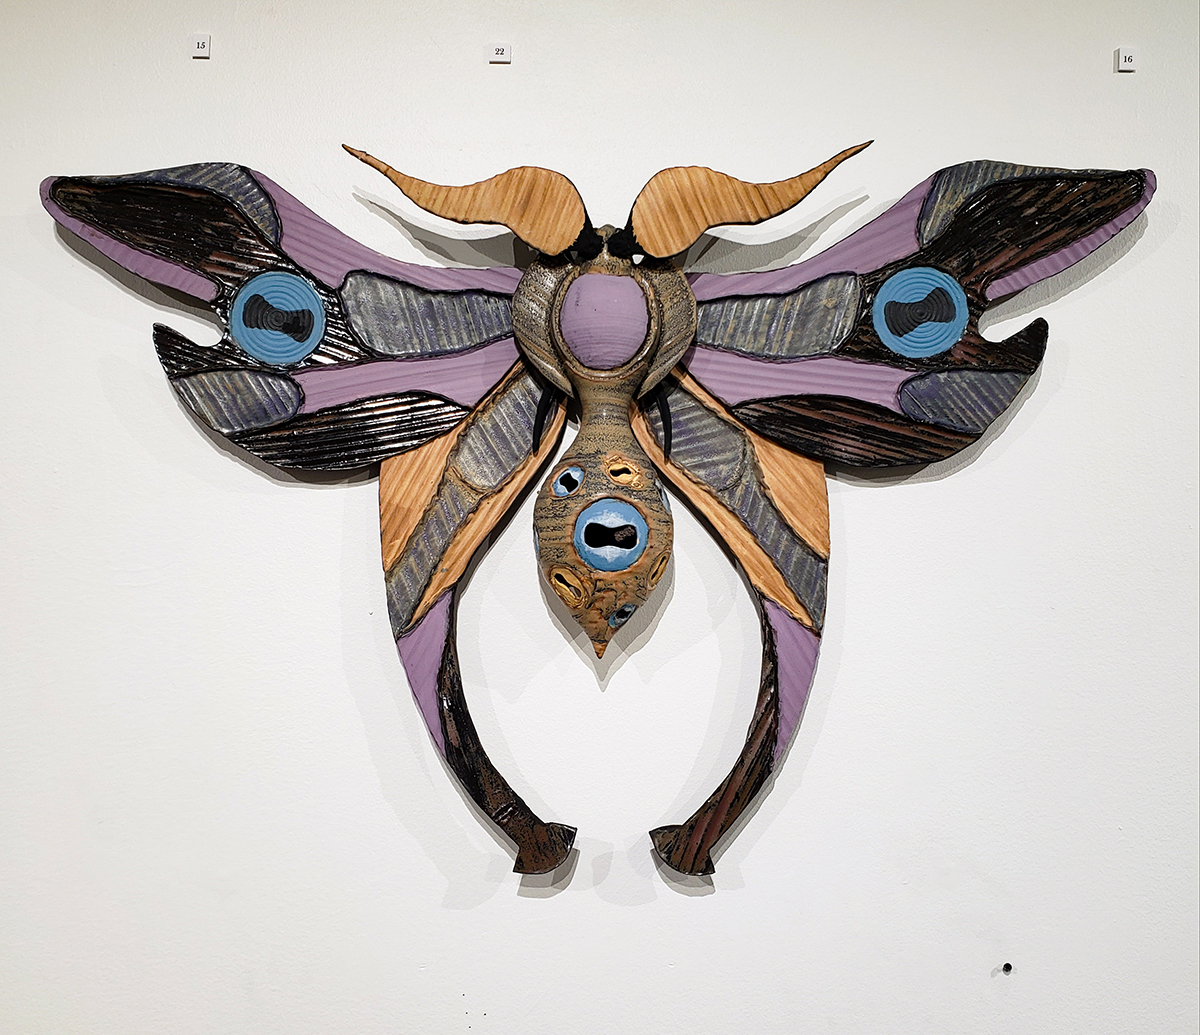 Dr. Mandrakes Wondrous Insects of Morroke, ceramic and mixed media sculpture by Riley McManus.